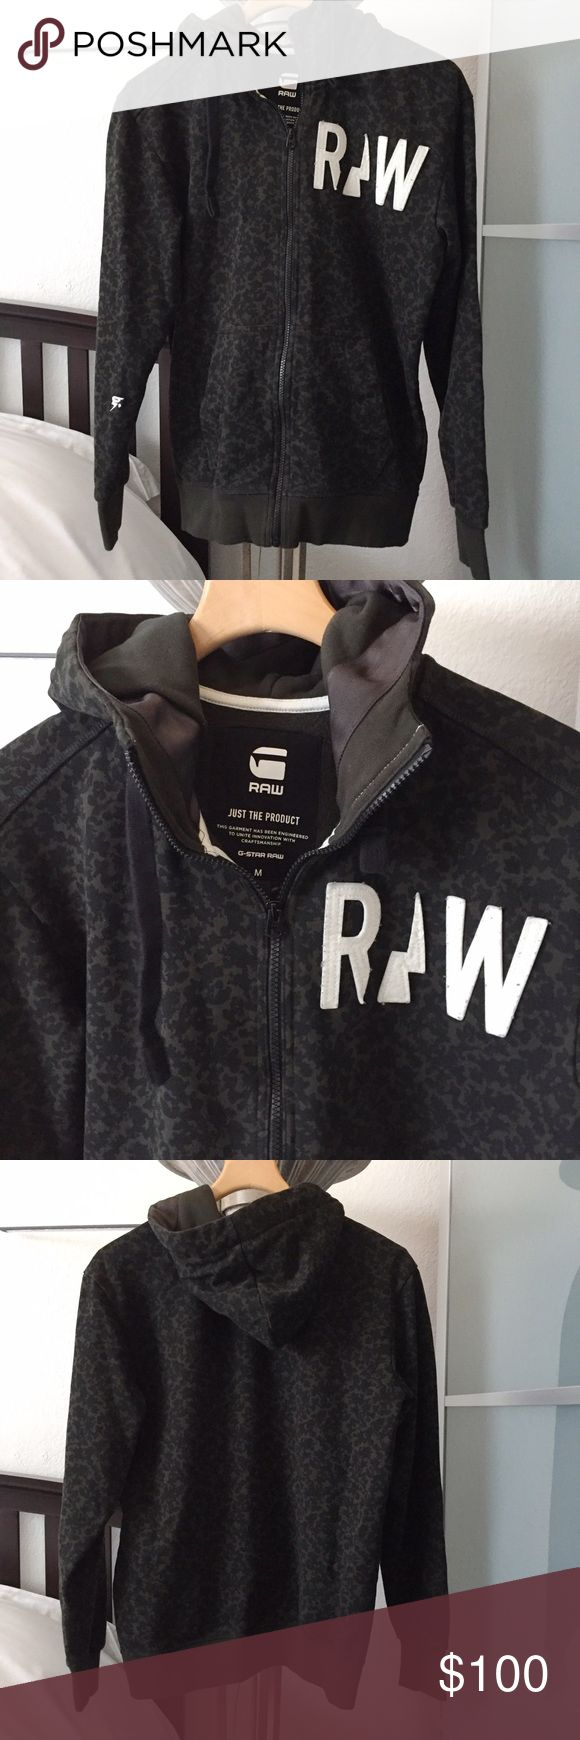 G-Star Raw Camo Hoodie Army green camo print zip up hoodie. Worn a few times. G-Star Jackets & Coats